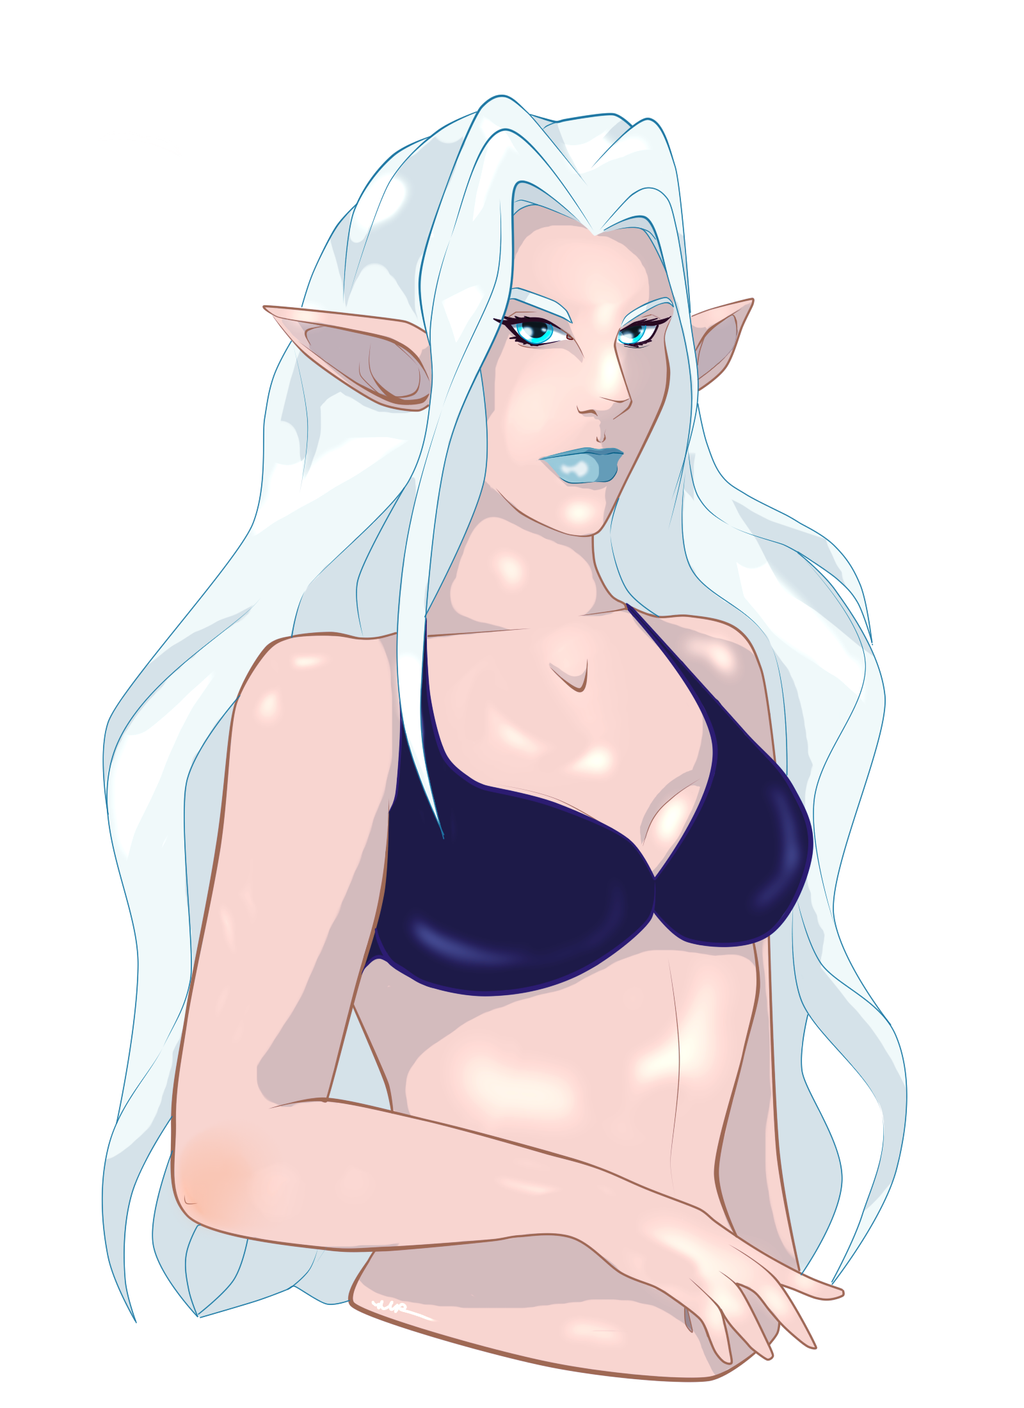 Lady Iceheart/Ysayle by Musing-Zero